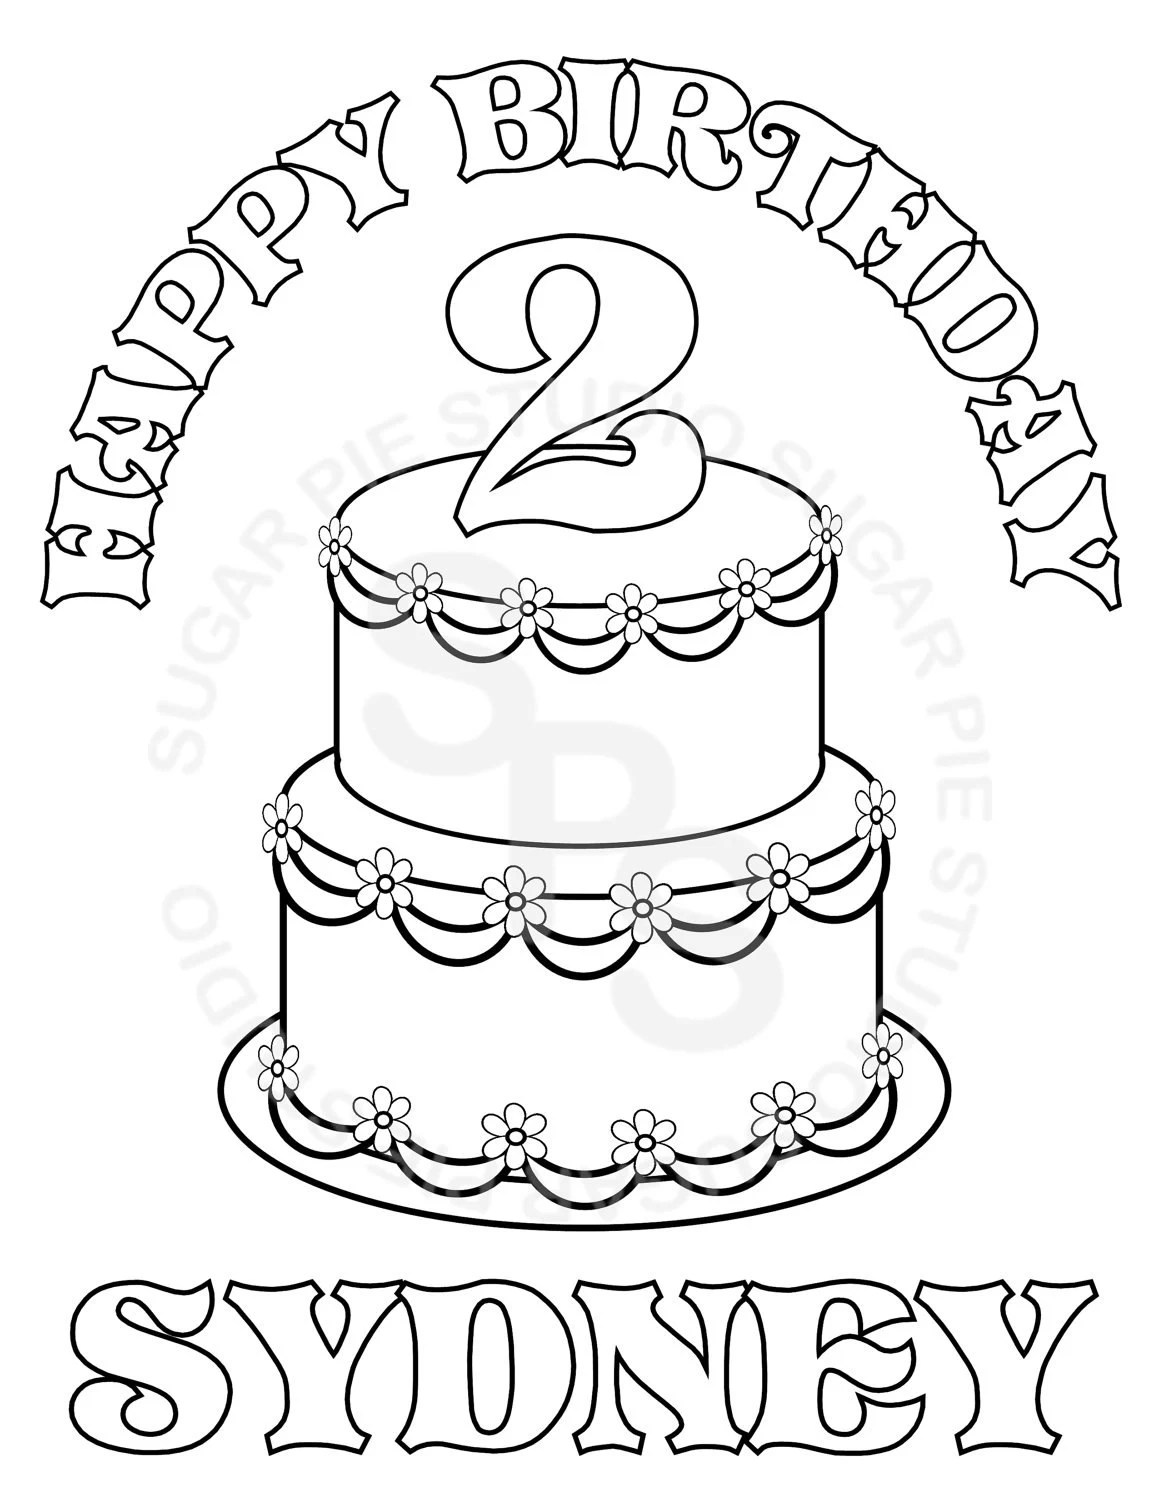 Personalized Printable Birthday Cake Party Favor childrens